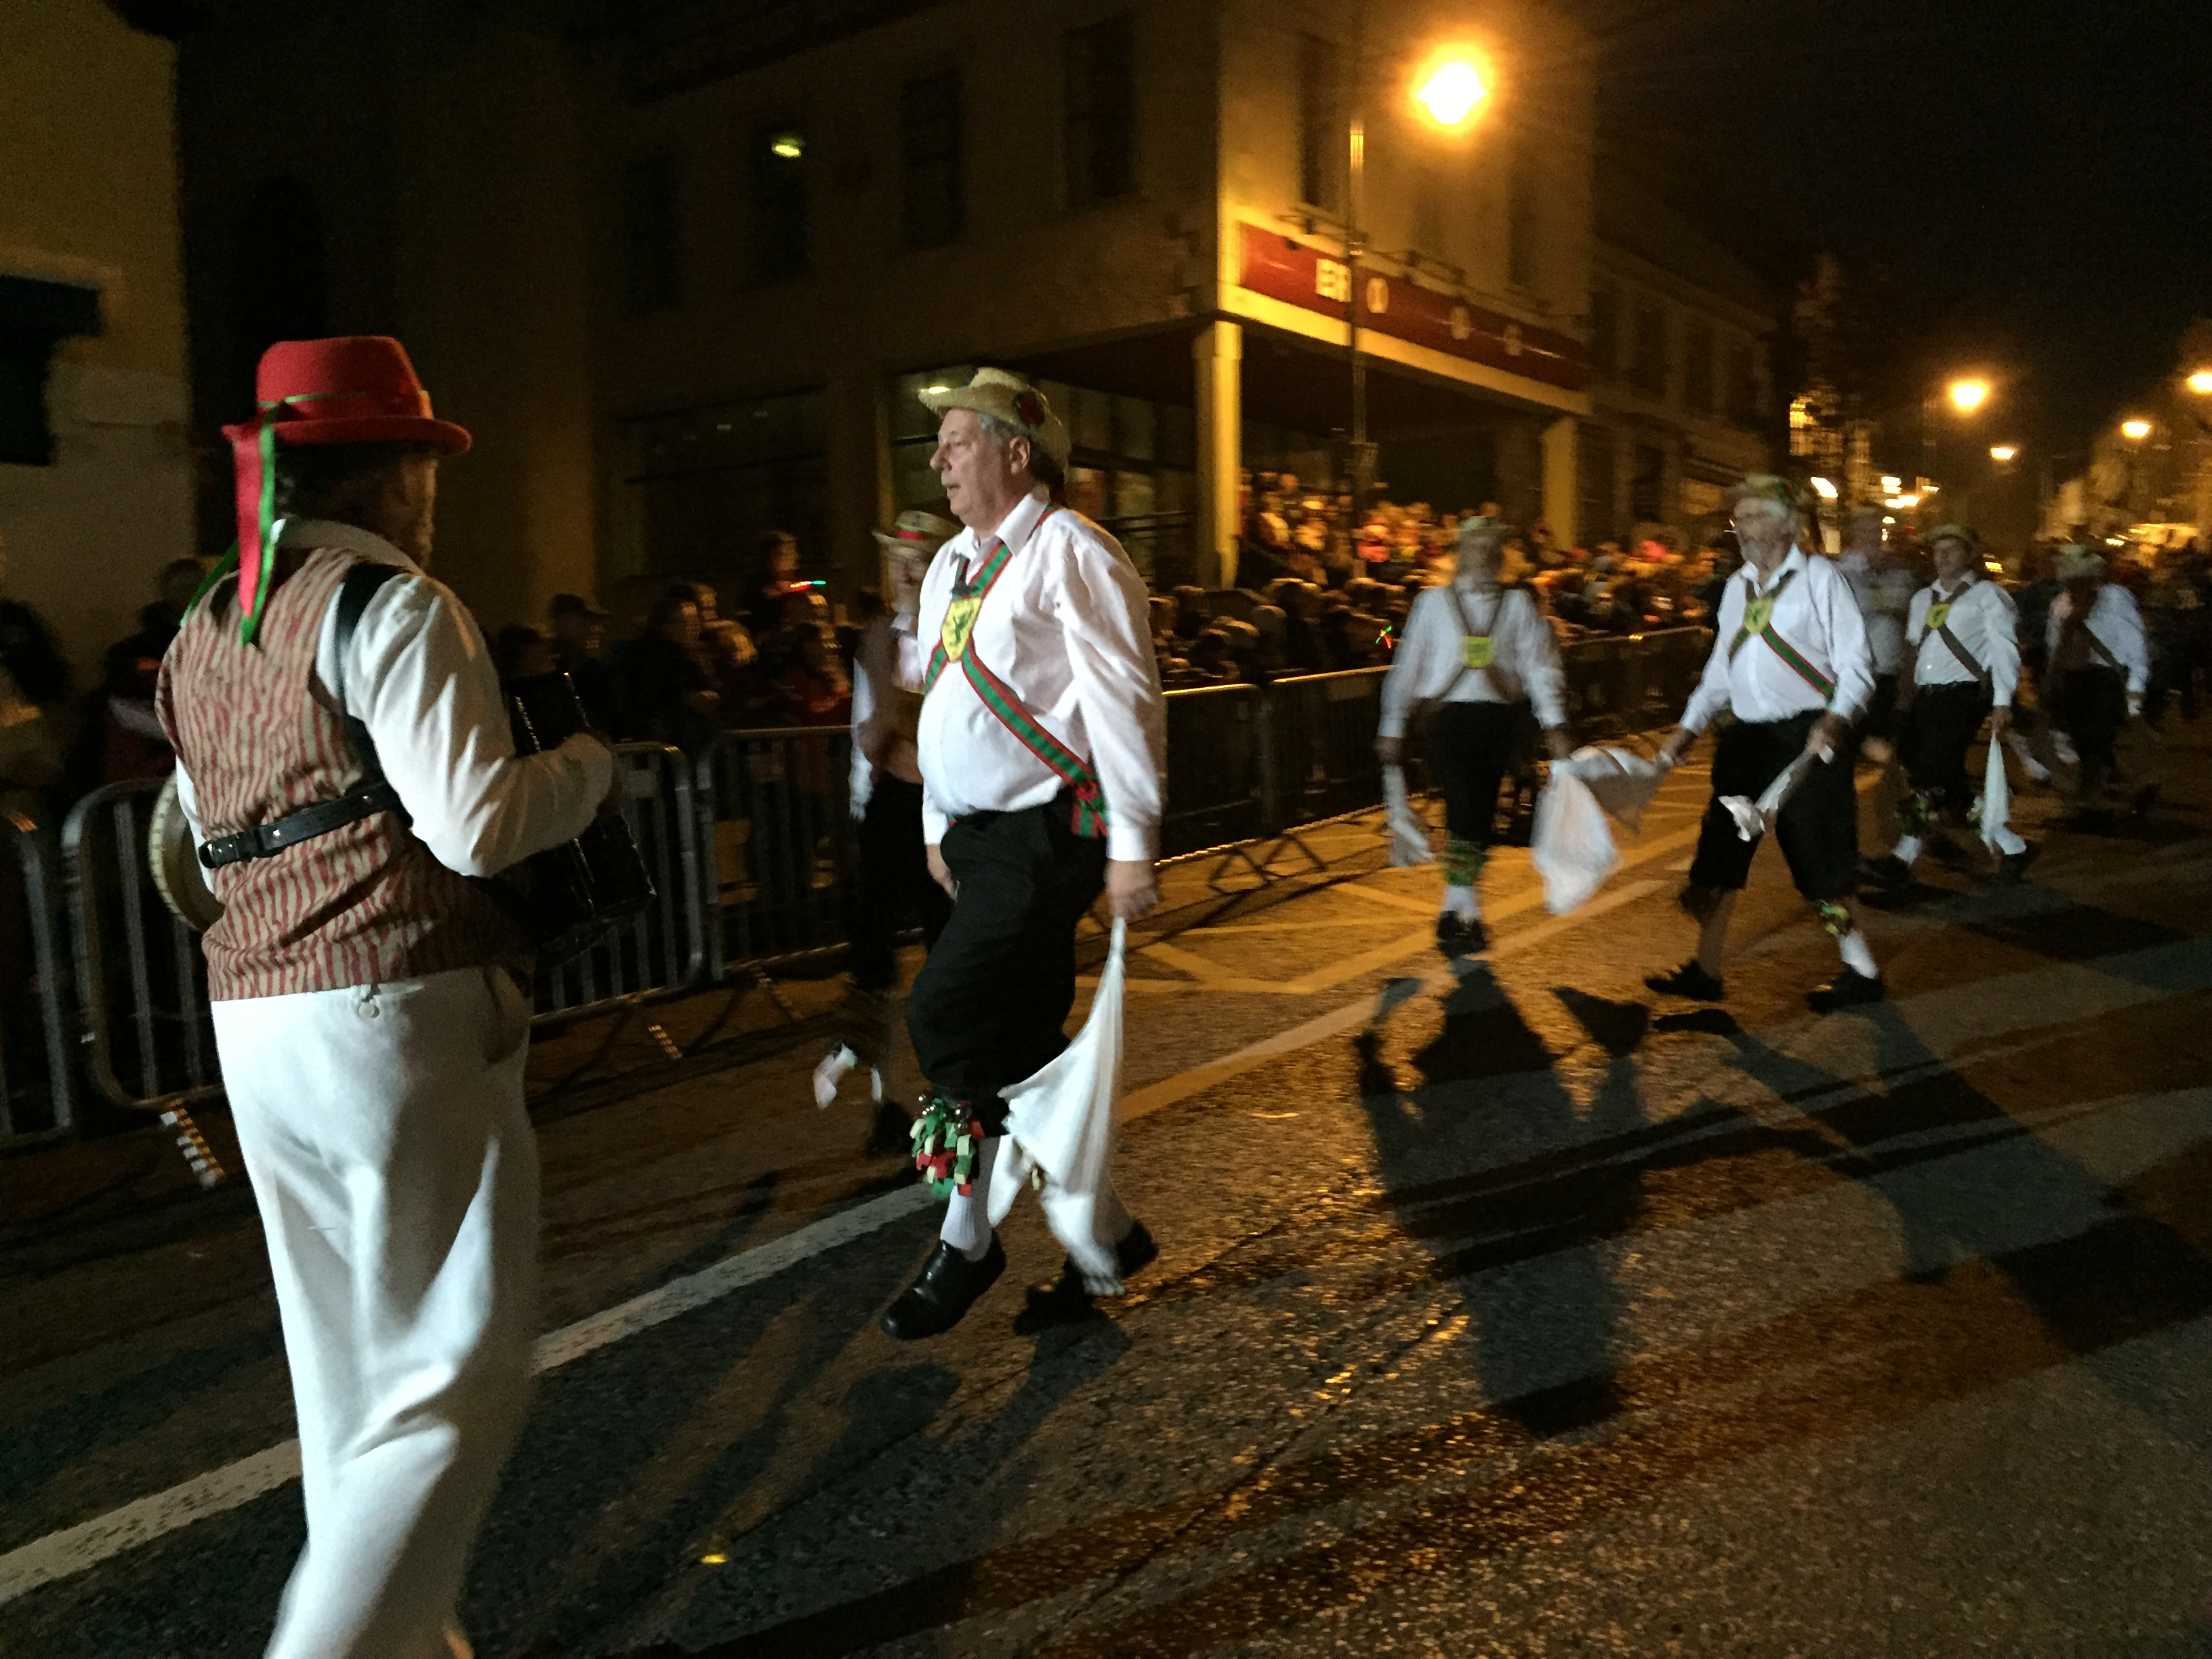 Wessex Morris Men at Bundoran, in the carnival procession, after dark.